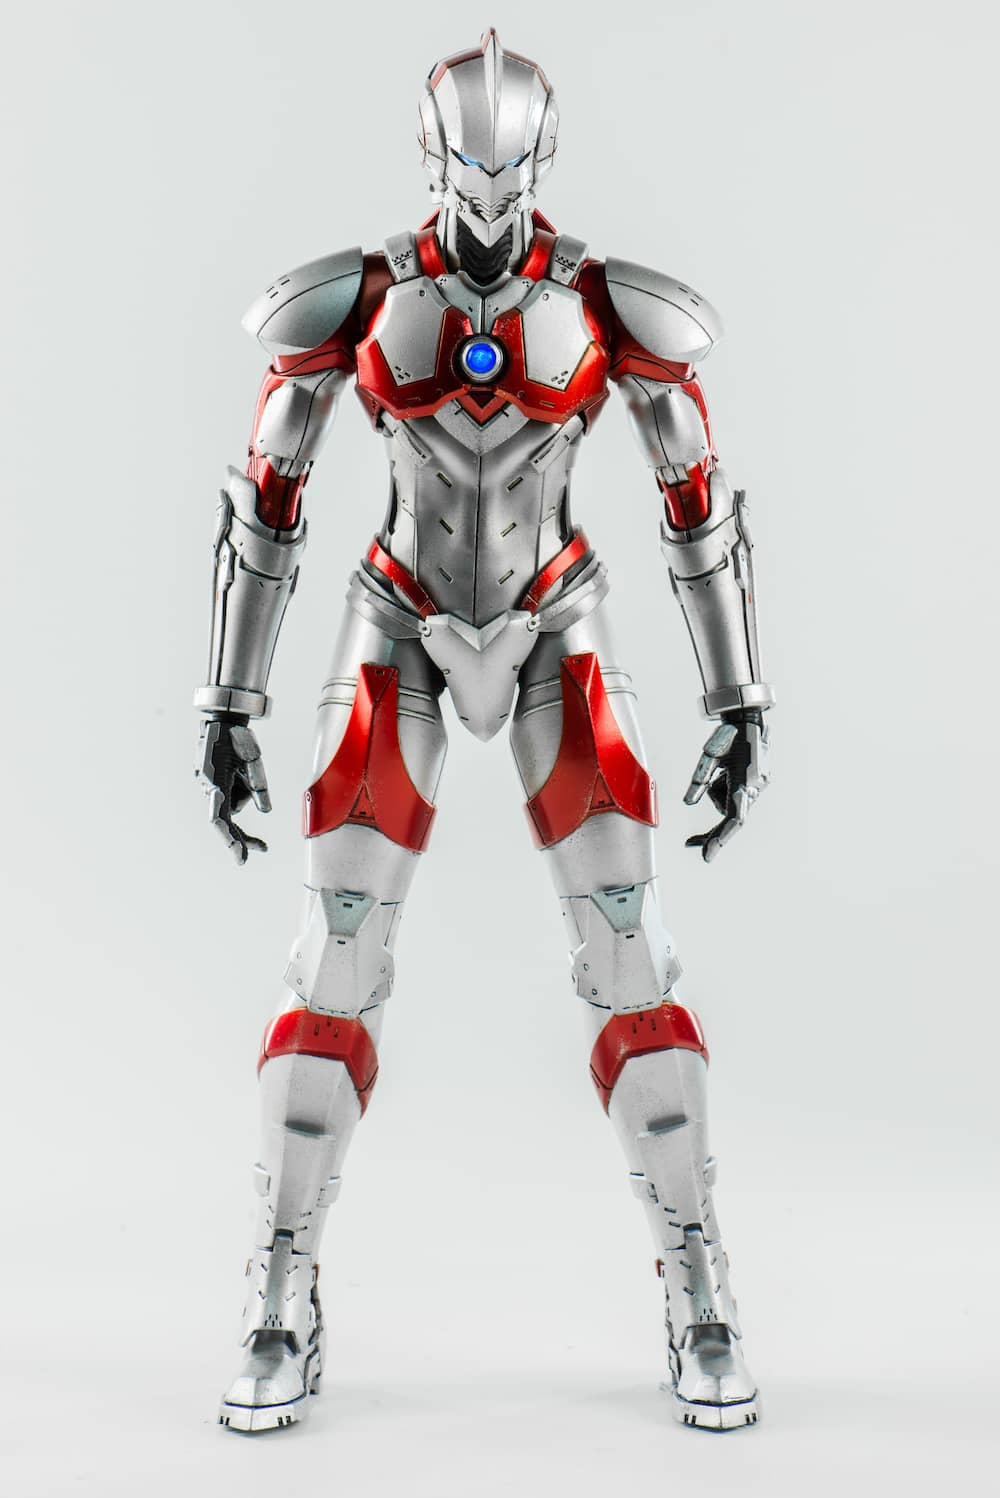 ULTRAMAN SUIT FIGURA 31 CM 1/6 SCALE COLLECTIBLE FIGURE ULTRAMAN